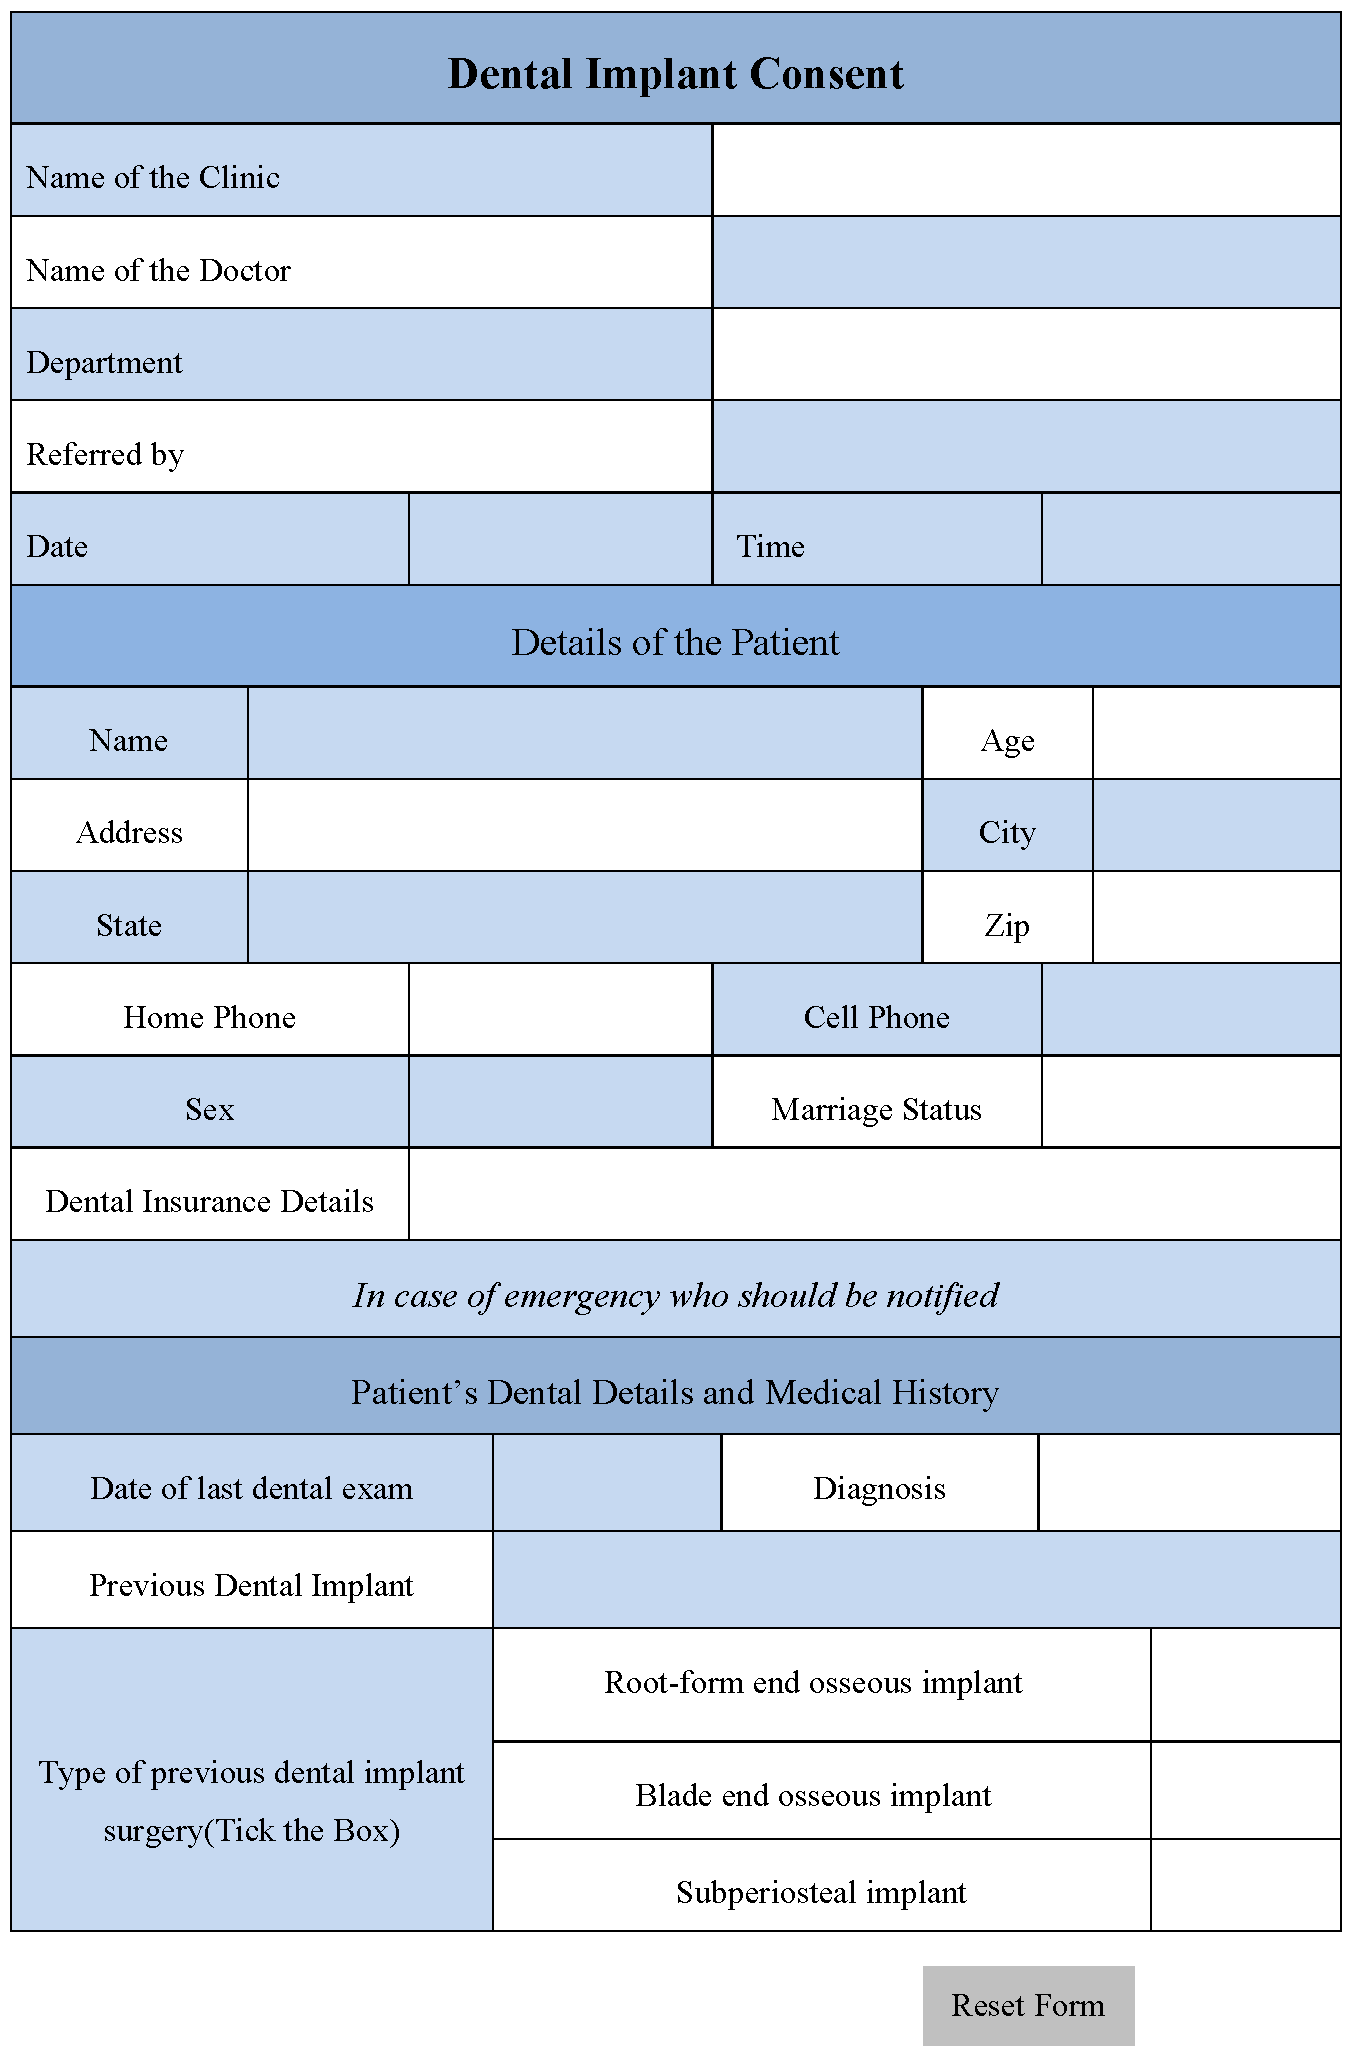 Dental Implant Consent Form